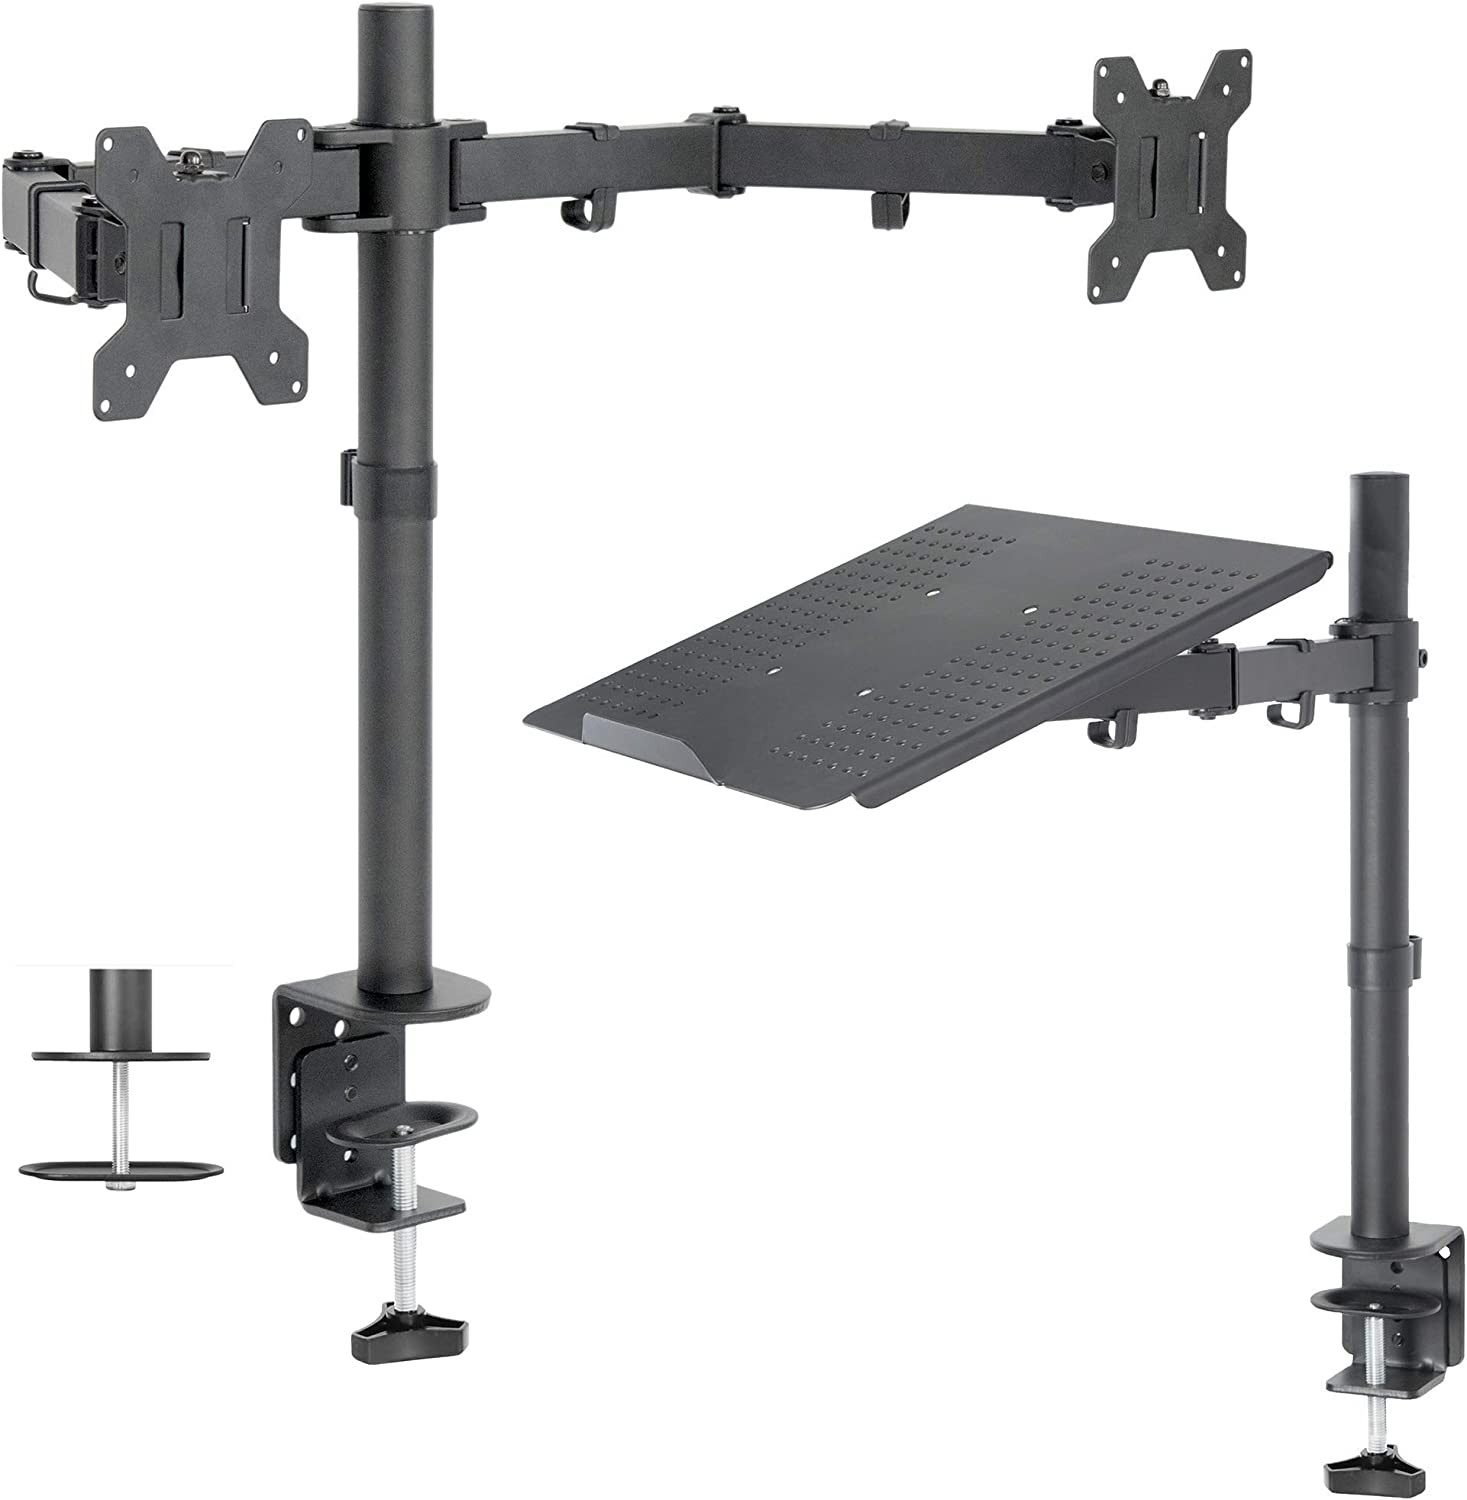 VIVO Dual 13 to 27 inch LCD Monitor Mount and Single Laptop Desk Mount Kit, Heavy Duty, Fully Adjustable Stand and Laptop Mount (Bundle)